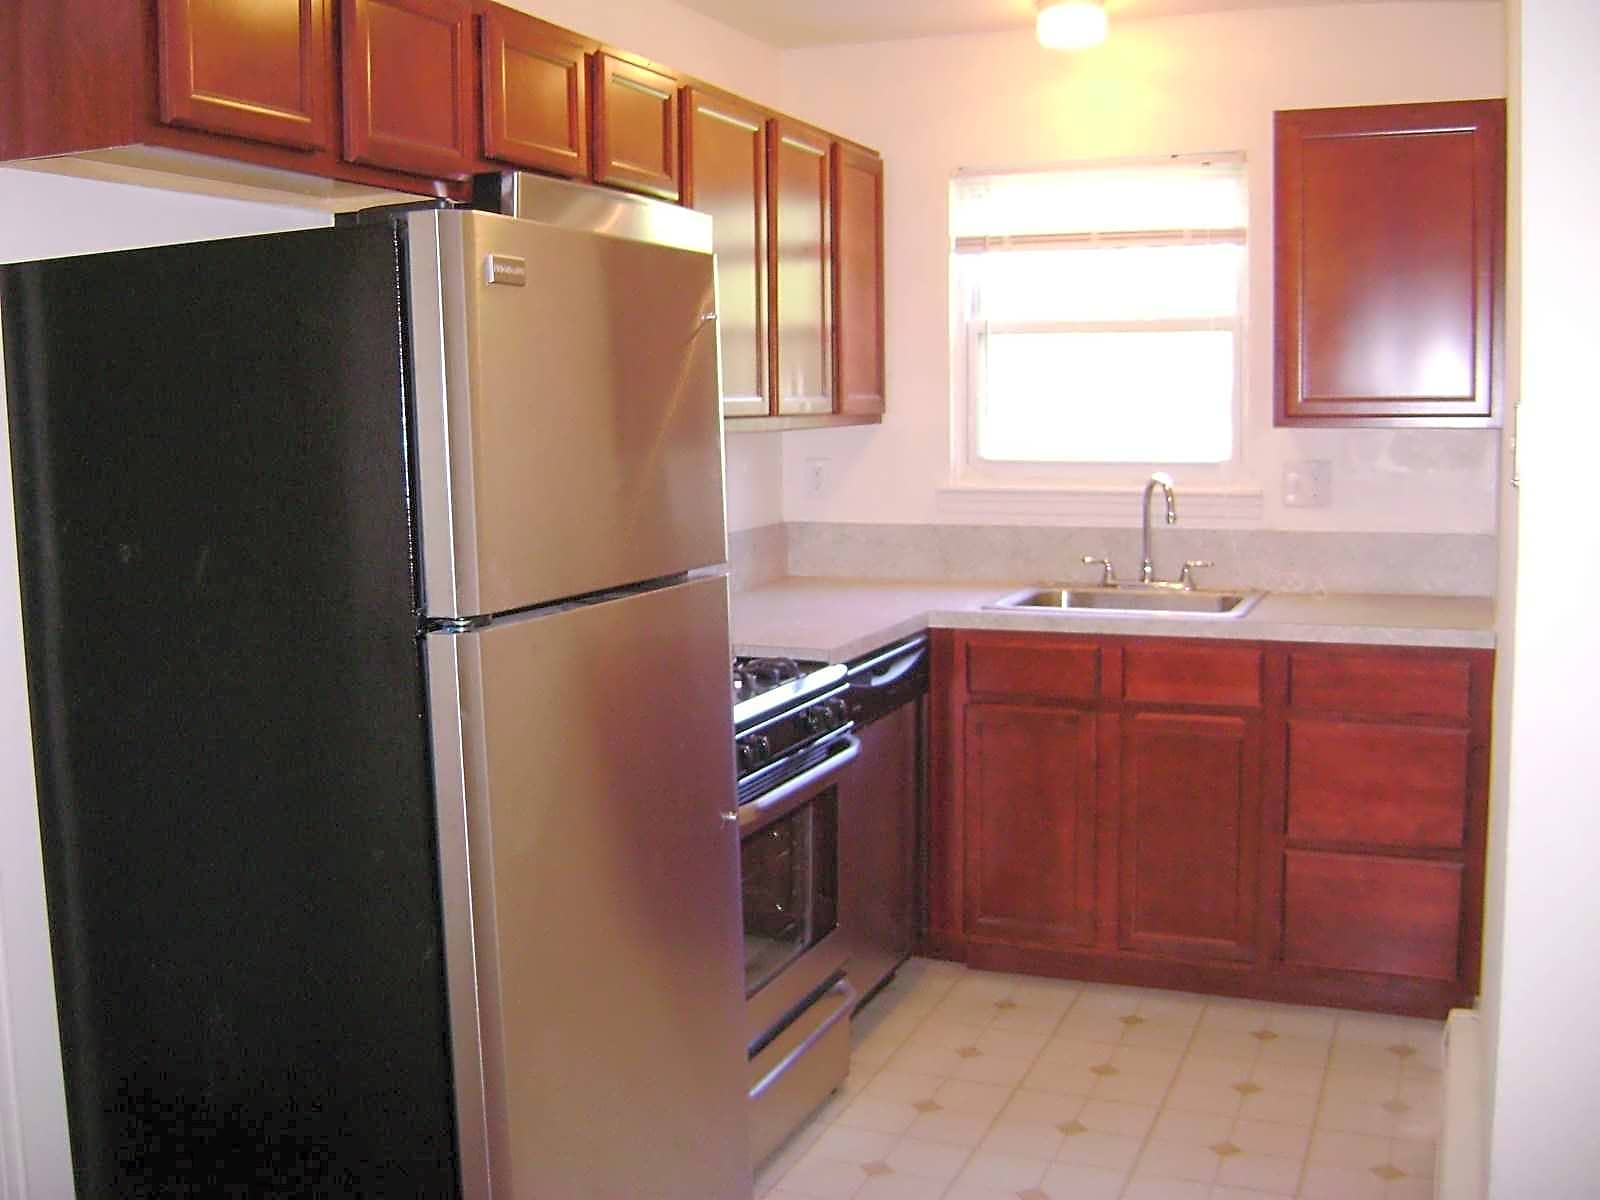 Photo: Neptune Apartment for Rent - $1040.00 / month; 1 Bd & 1 Ba